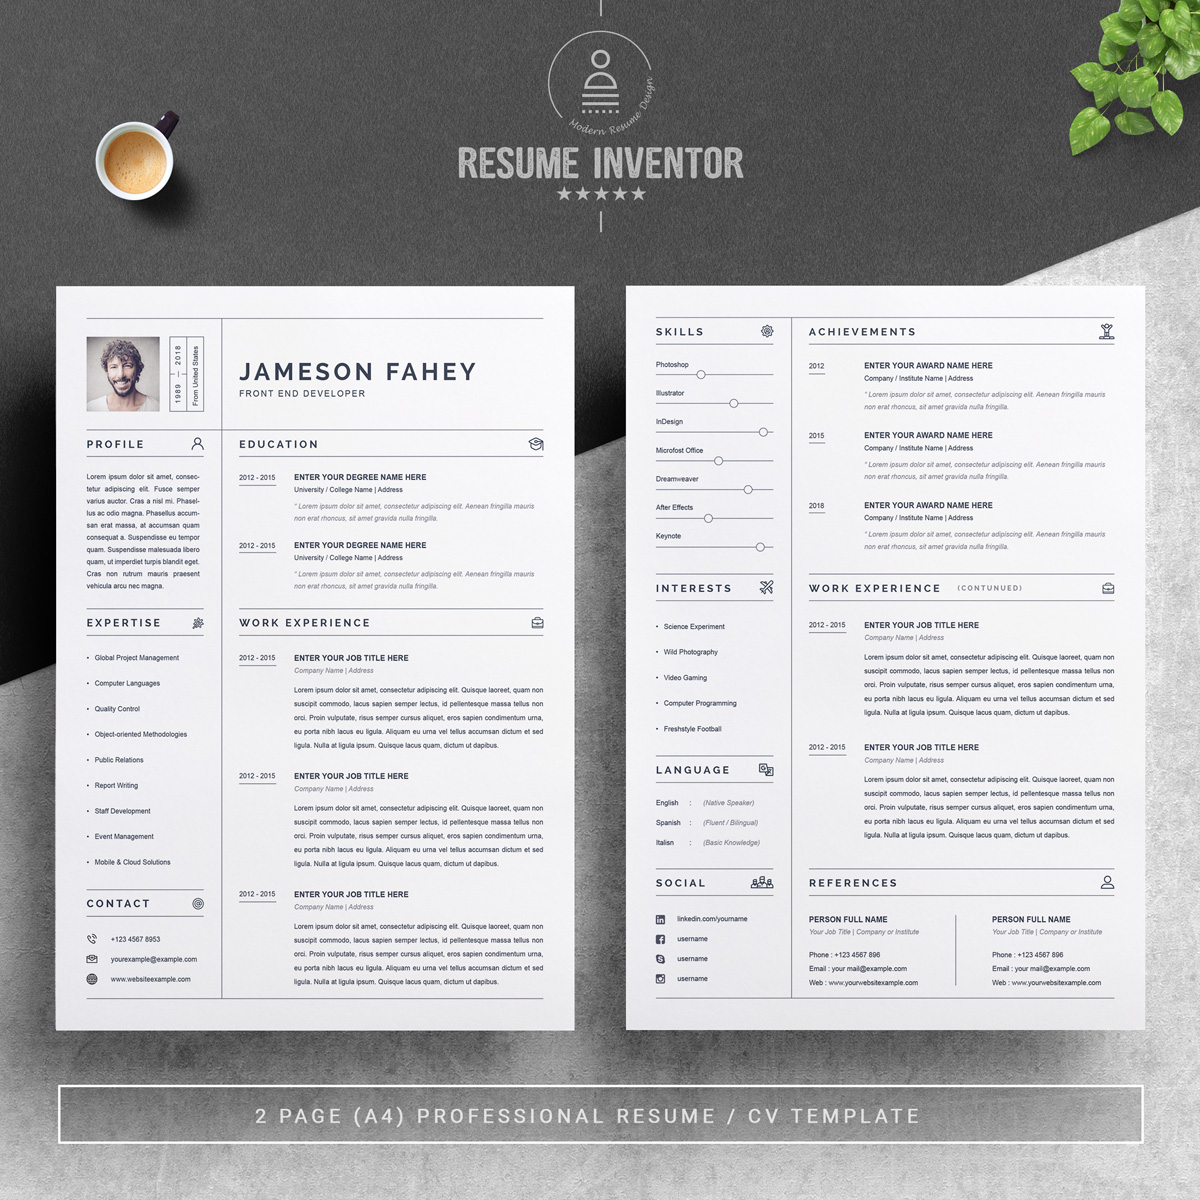 https://s3u.tmimgcdn.com/1860567-1553494240211_02_2-Pages-Free-Resume-Design-Template.jpg